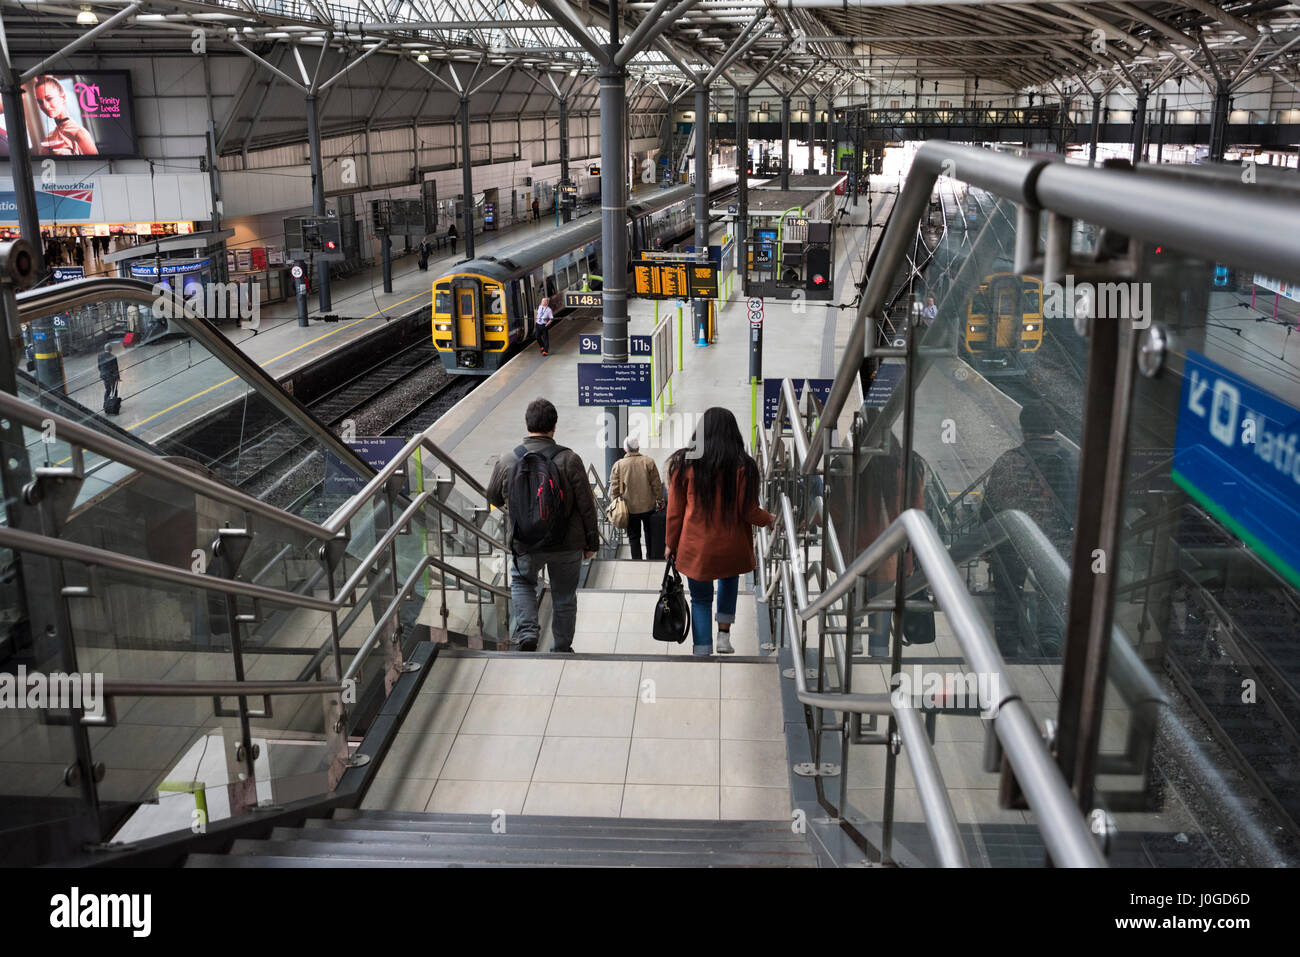 Leeds City Railway Station, Leeds, West Yorkshire, UK, with Sprinter train to Manchester waiting at platform - Stock Image